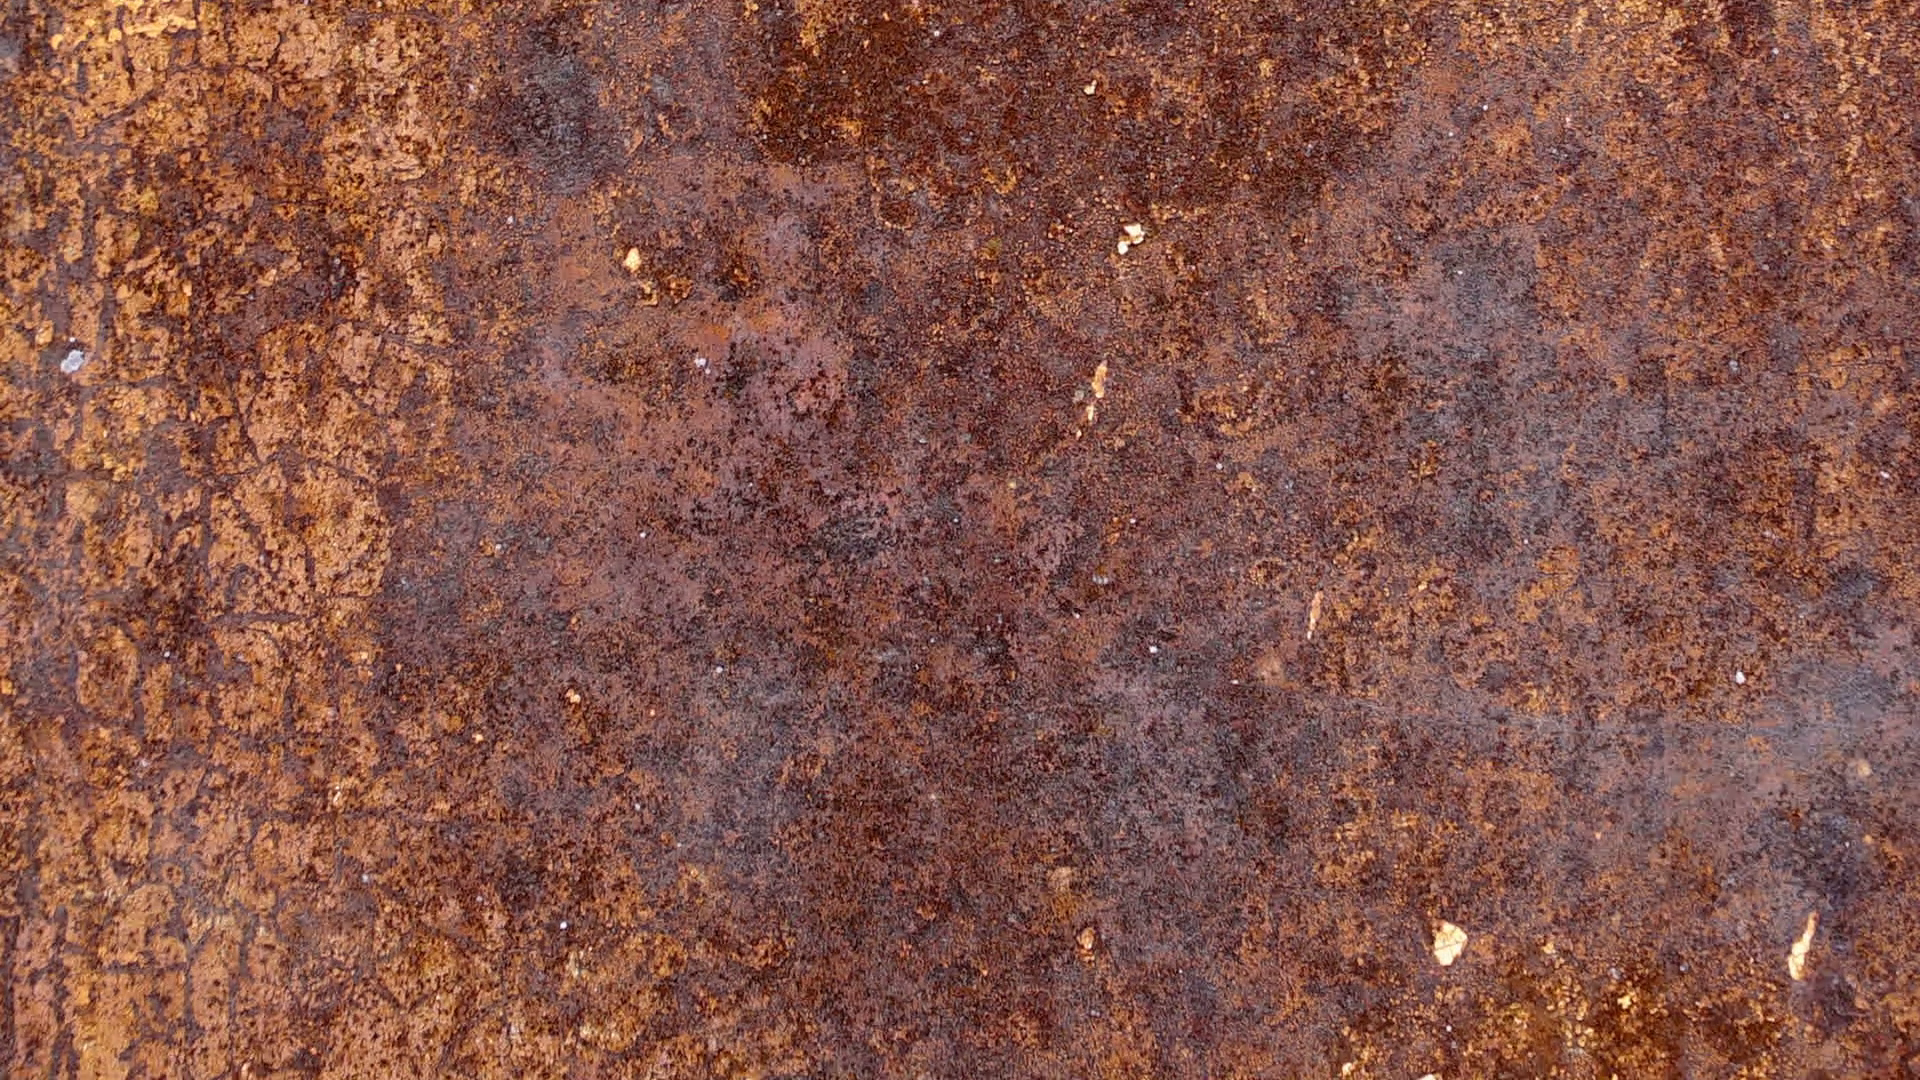 Old Metal Texture Png - Download Metal Texture Png - Transparent PNG -() png images ...